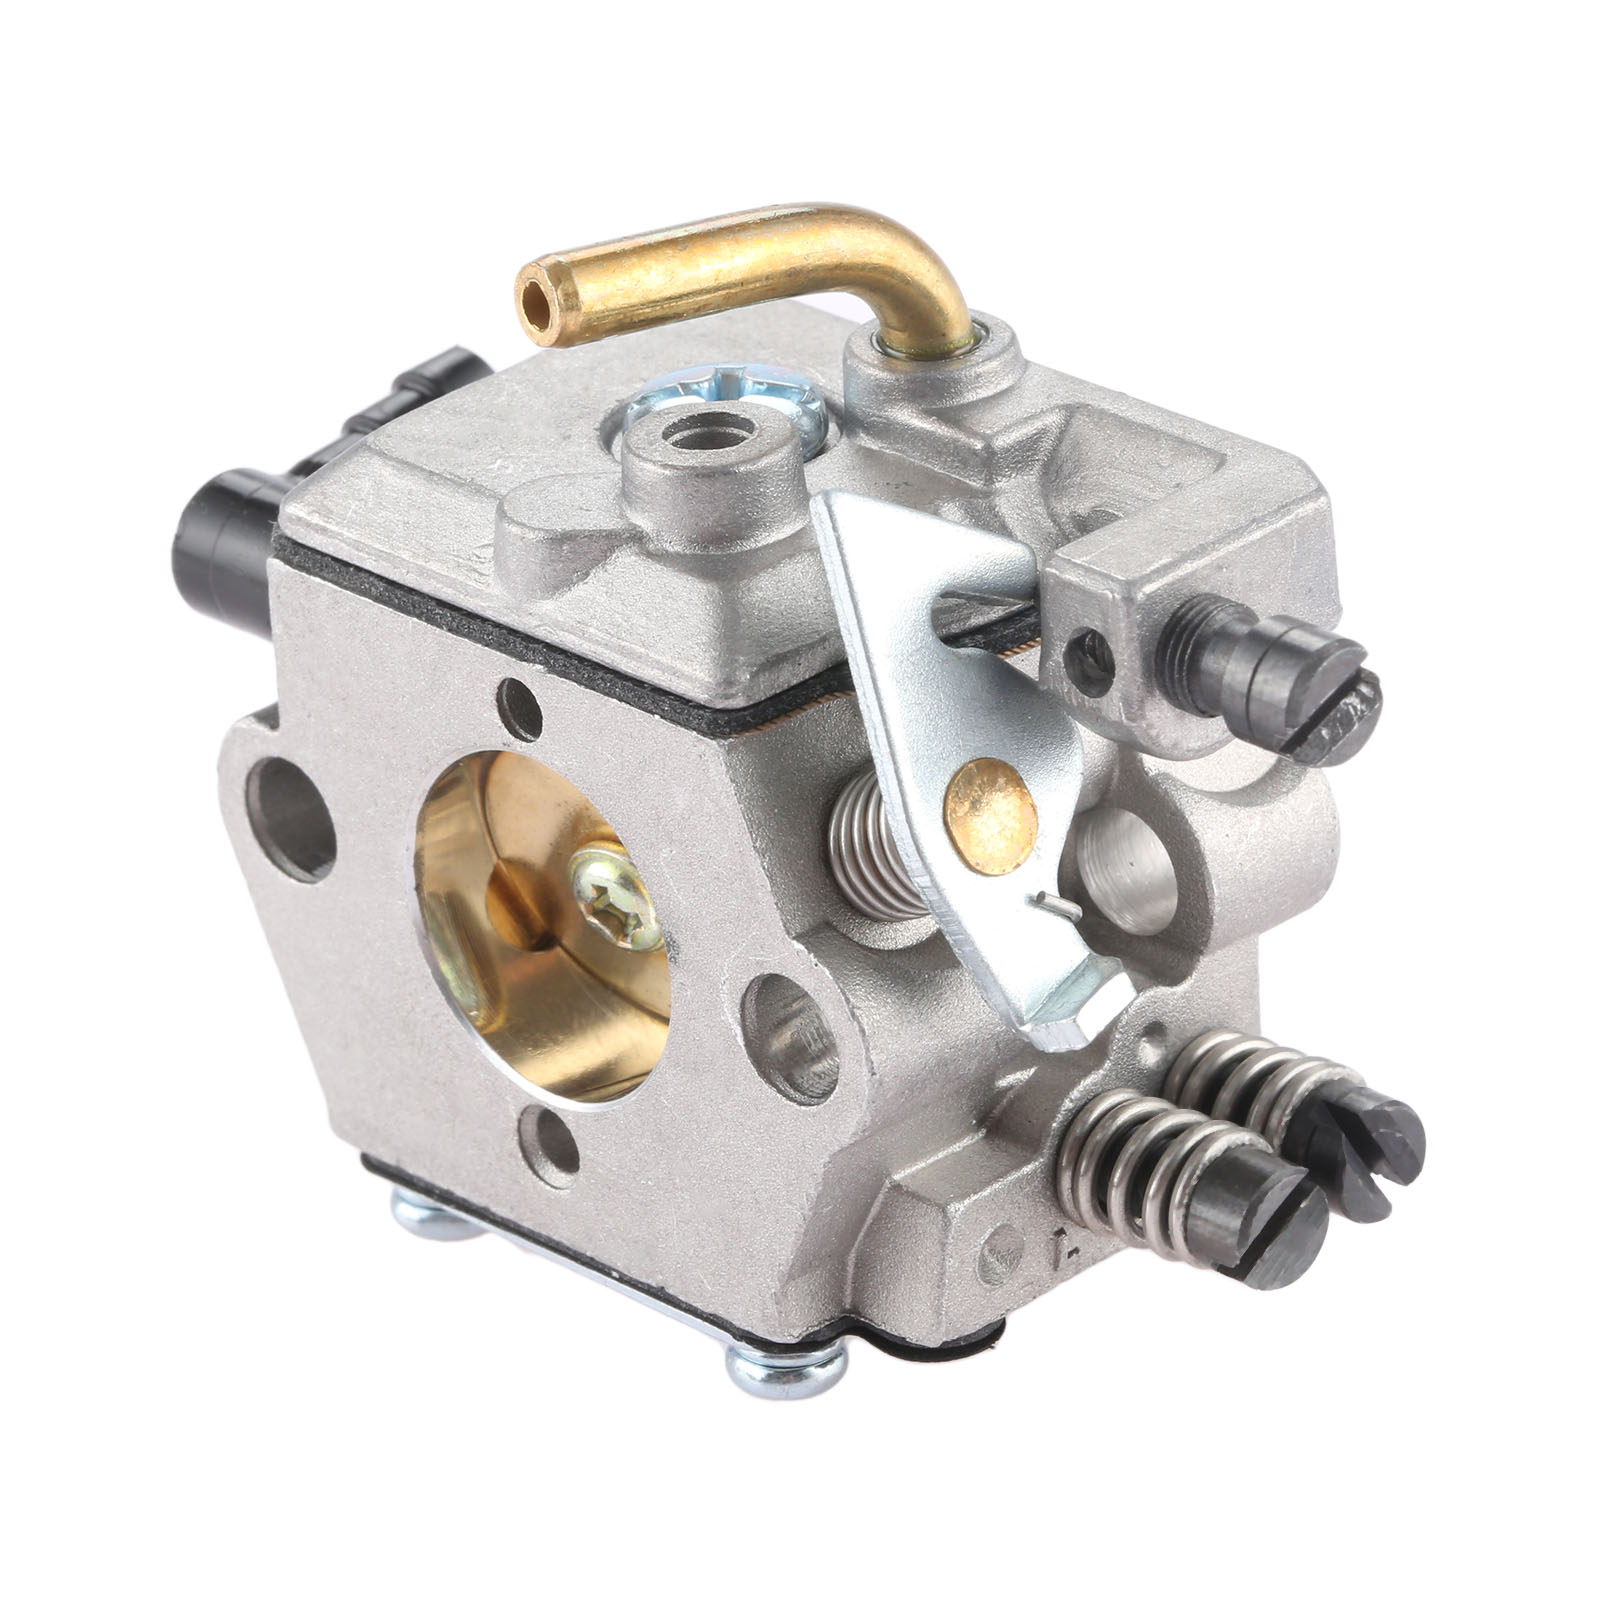 Image 5 - DRELD Carburetor For Stihl 024 026 MS240 MS260 024AV 024S Chainsaw 1121 120 0611 Replace OEM Walbro WT 194 WT 194 1 wt 22 Carb-in Chainsaws from Tools